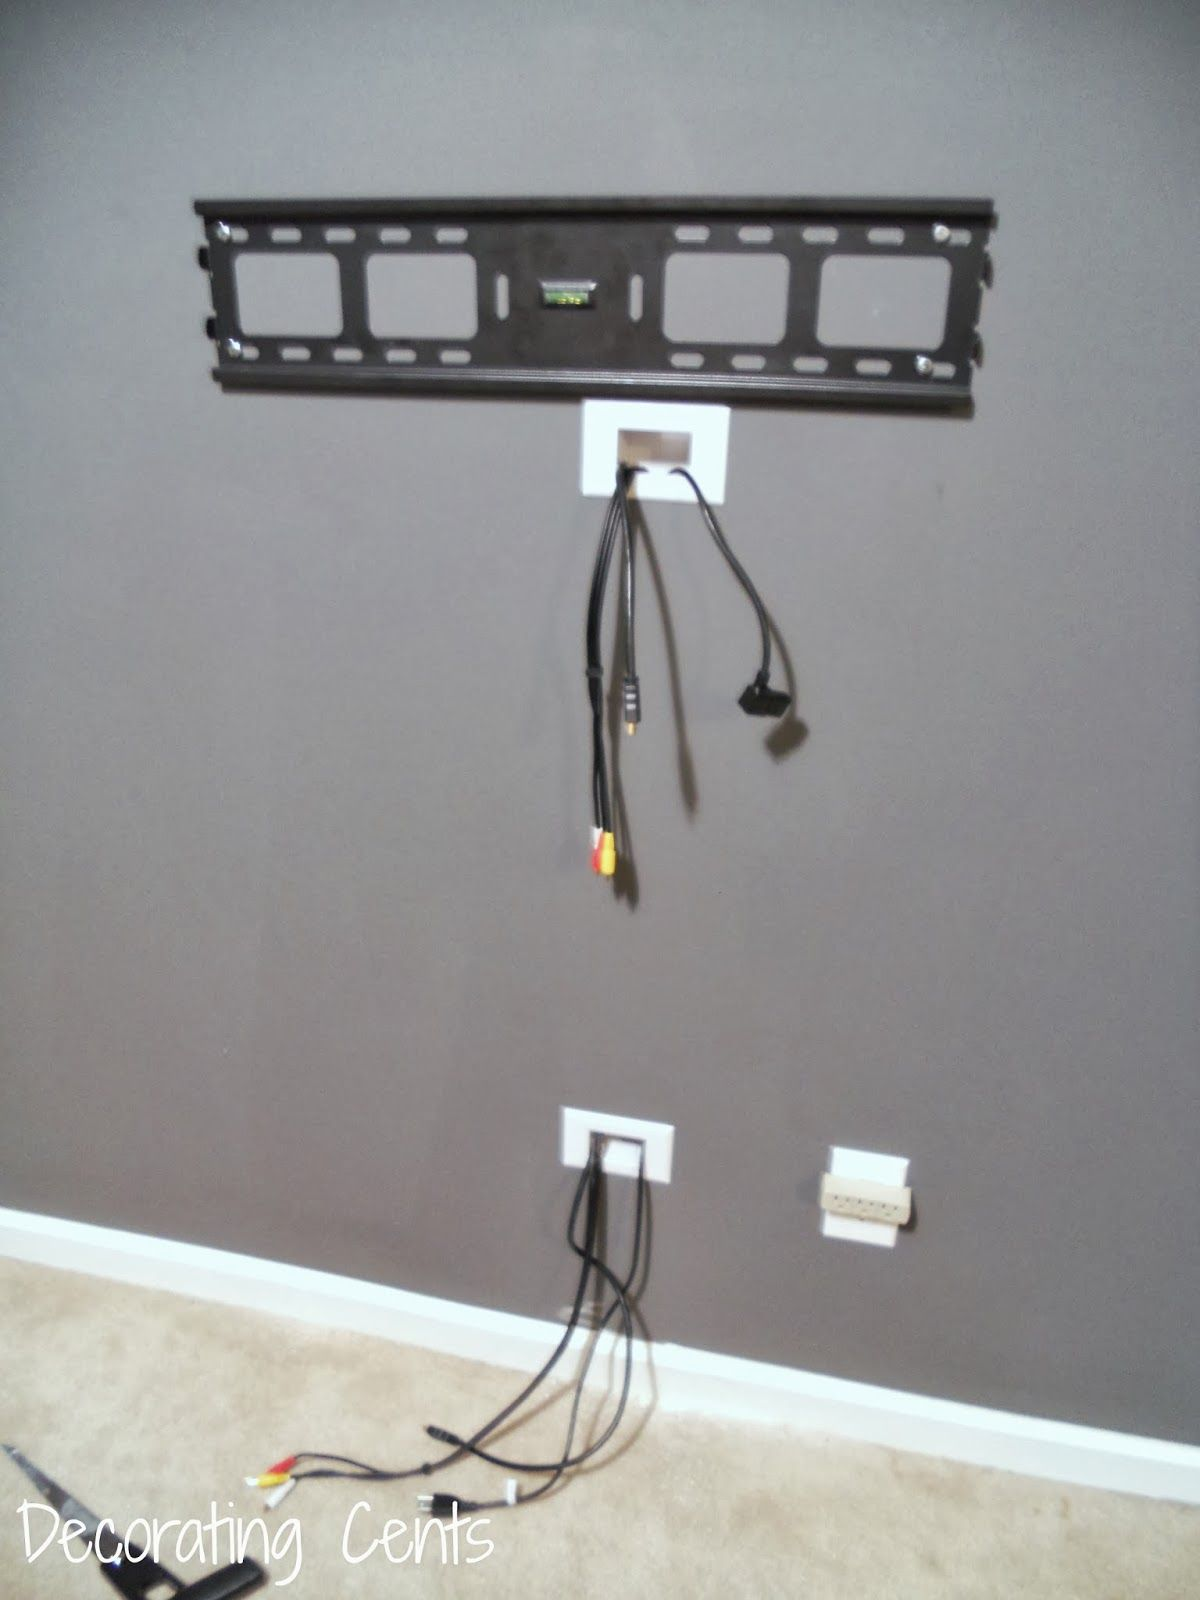 Wall Mounted Tv Setup Ideas Decorating Cents Wall Mounted Tv And Hiding The Cords